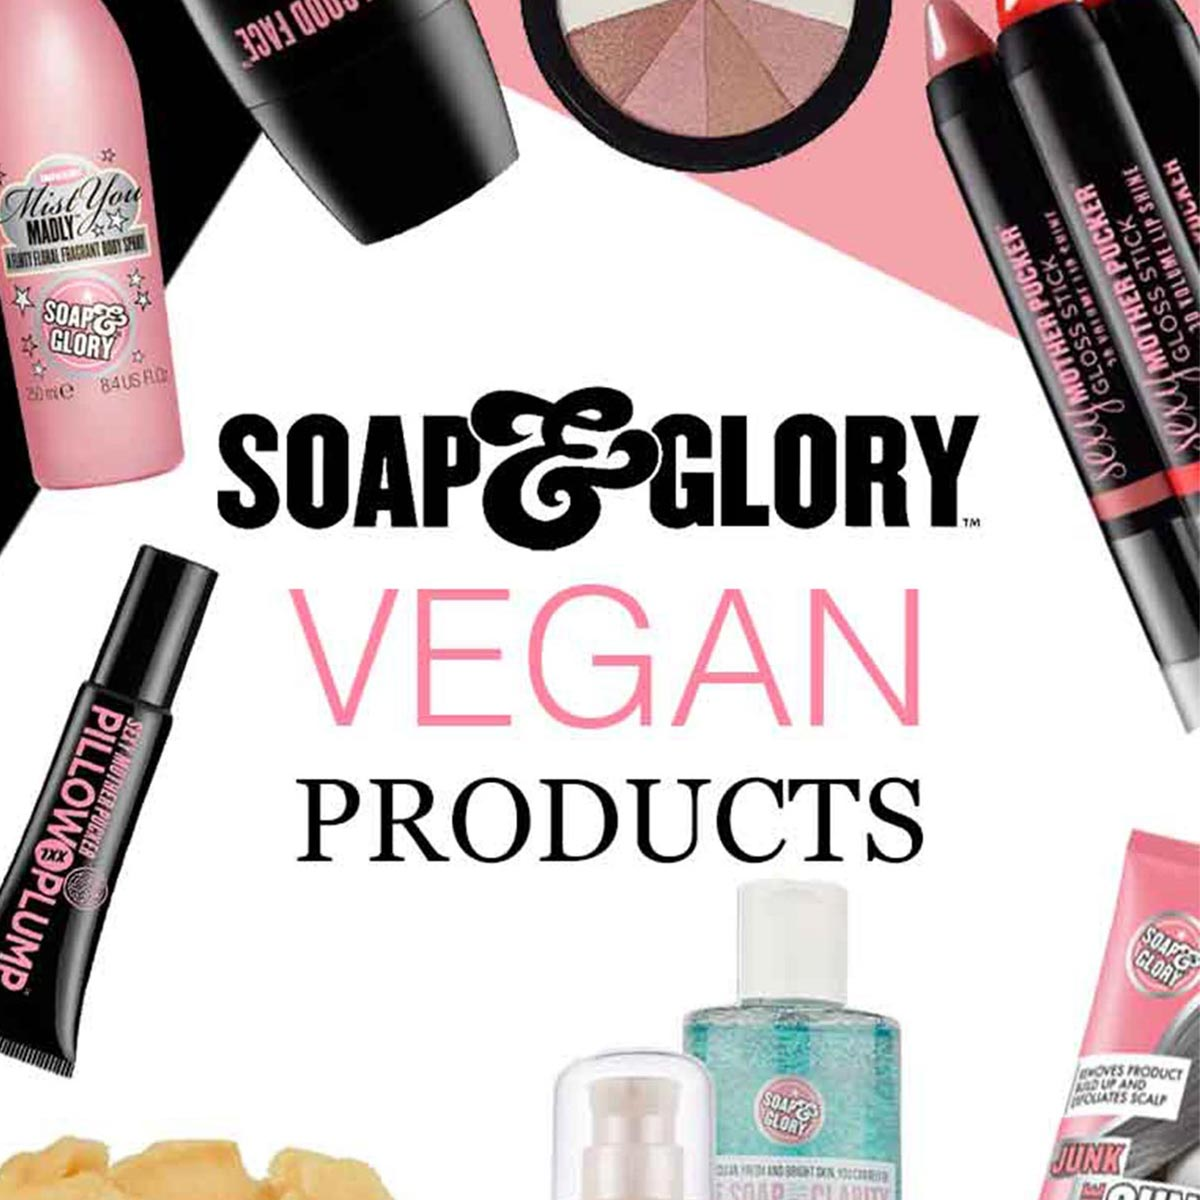 Soap and glory cruelty free and vegan products